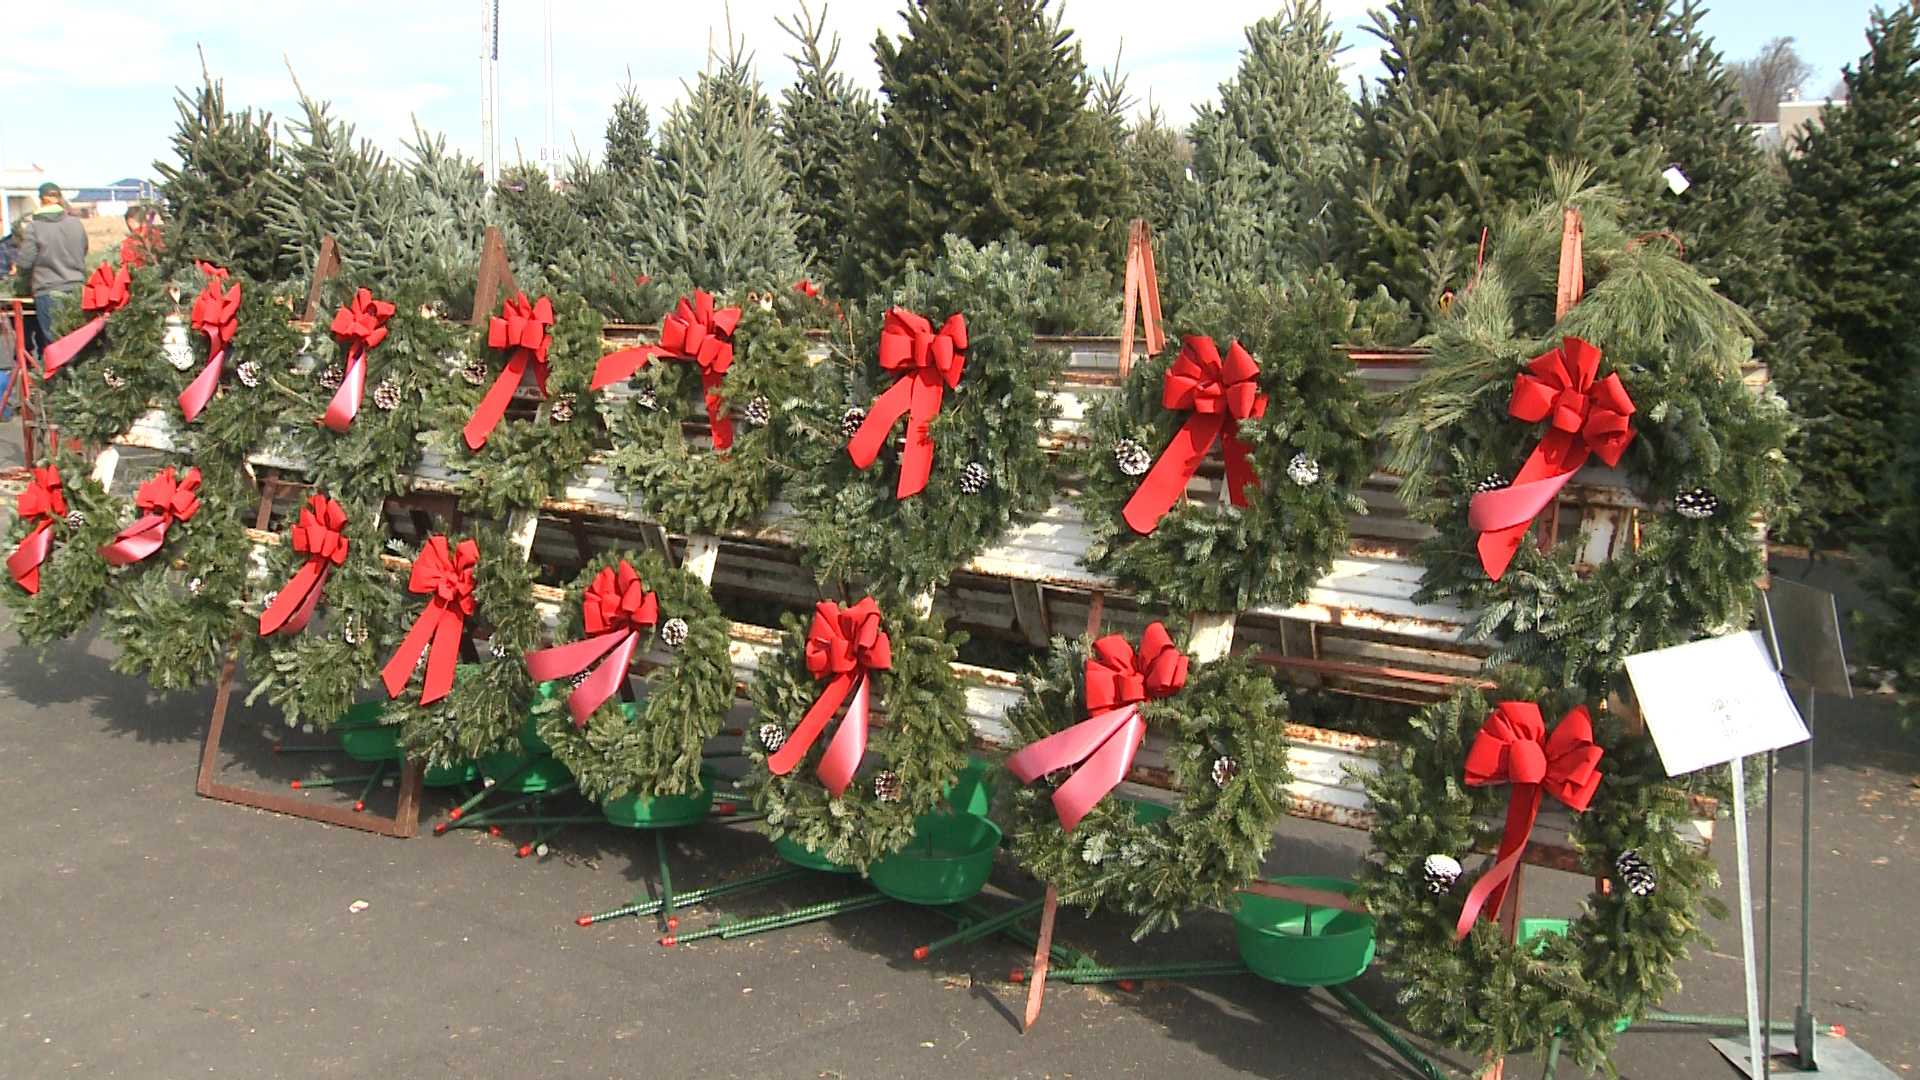 Nationwide shortage on Christmas trees